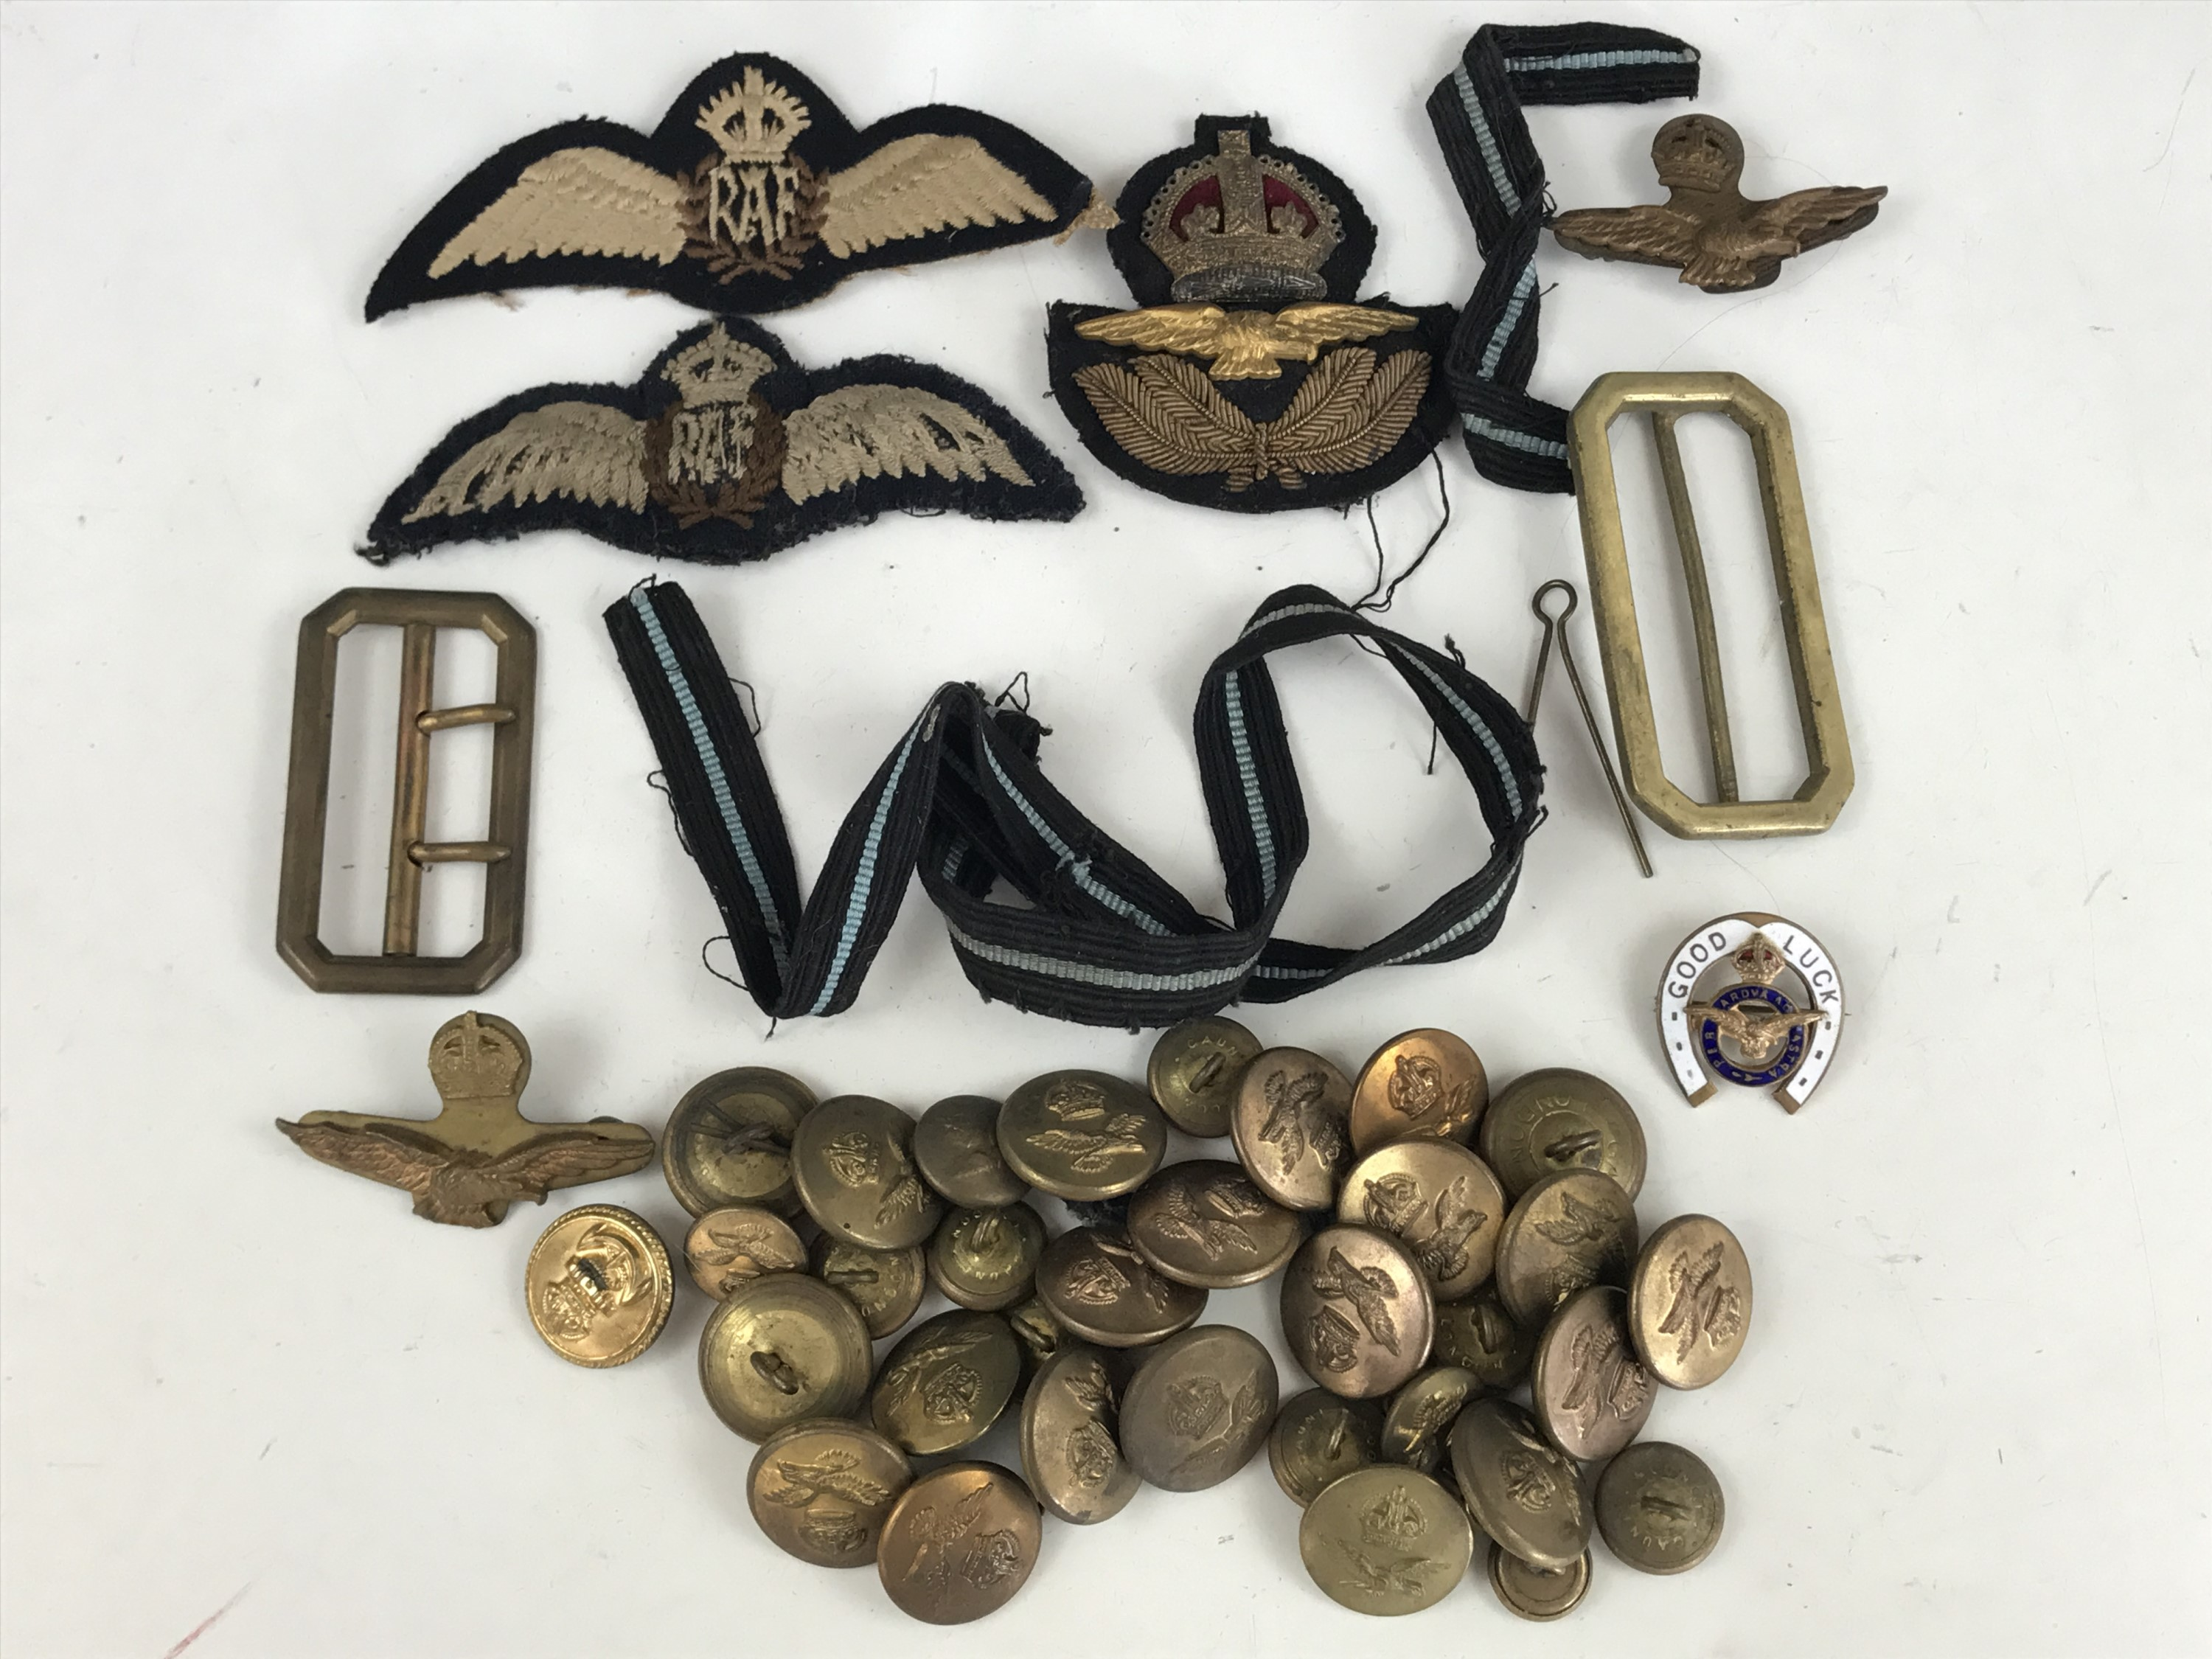 Lot 51 - A related group of Second World War RAF officer's insignia including pilots' wings, cap badges etc